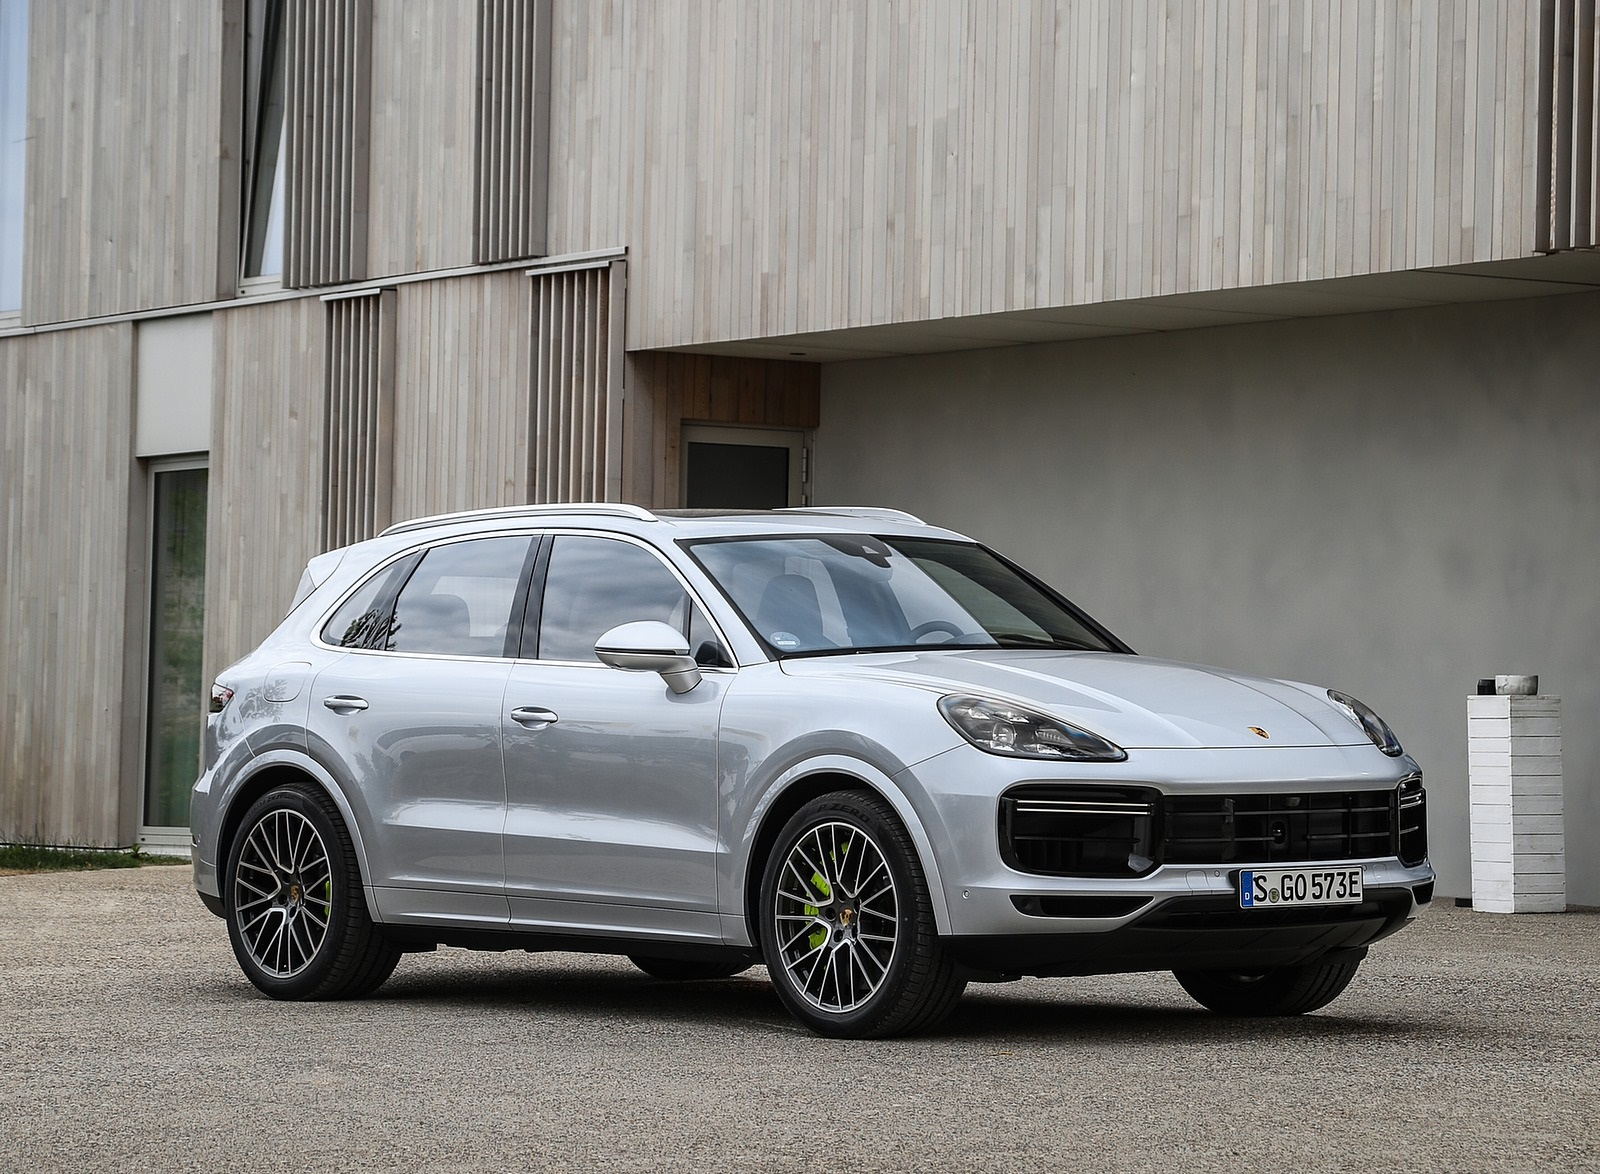 2020 Porsche Cayenne Turbo S E-Hybrid Front Three-Quarter Wallpapers (14)